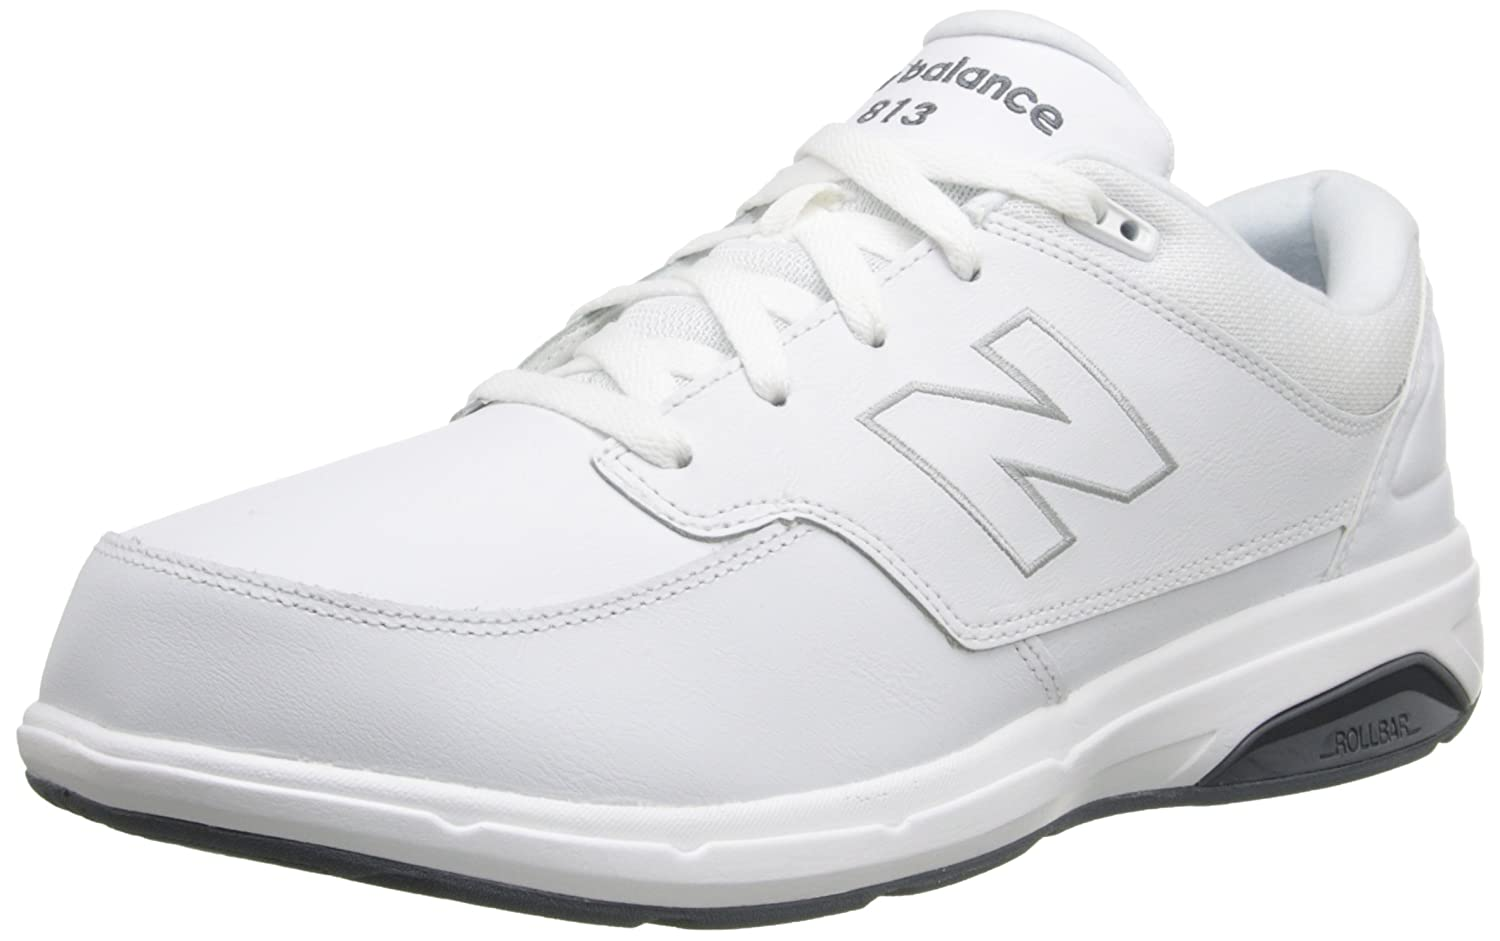 New Balance Men's MW813 MW813 Men's Walking schuhe 1af79f